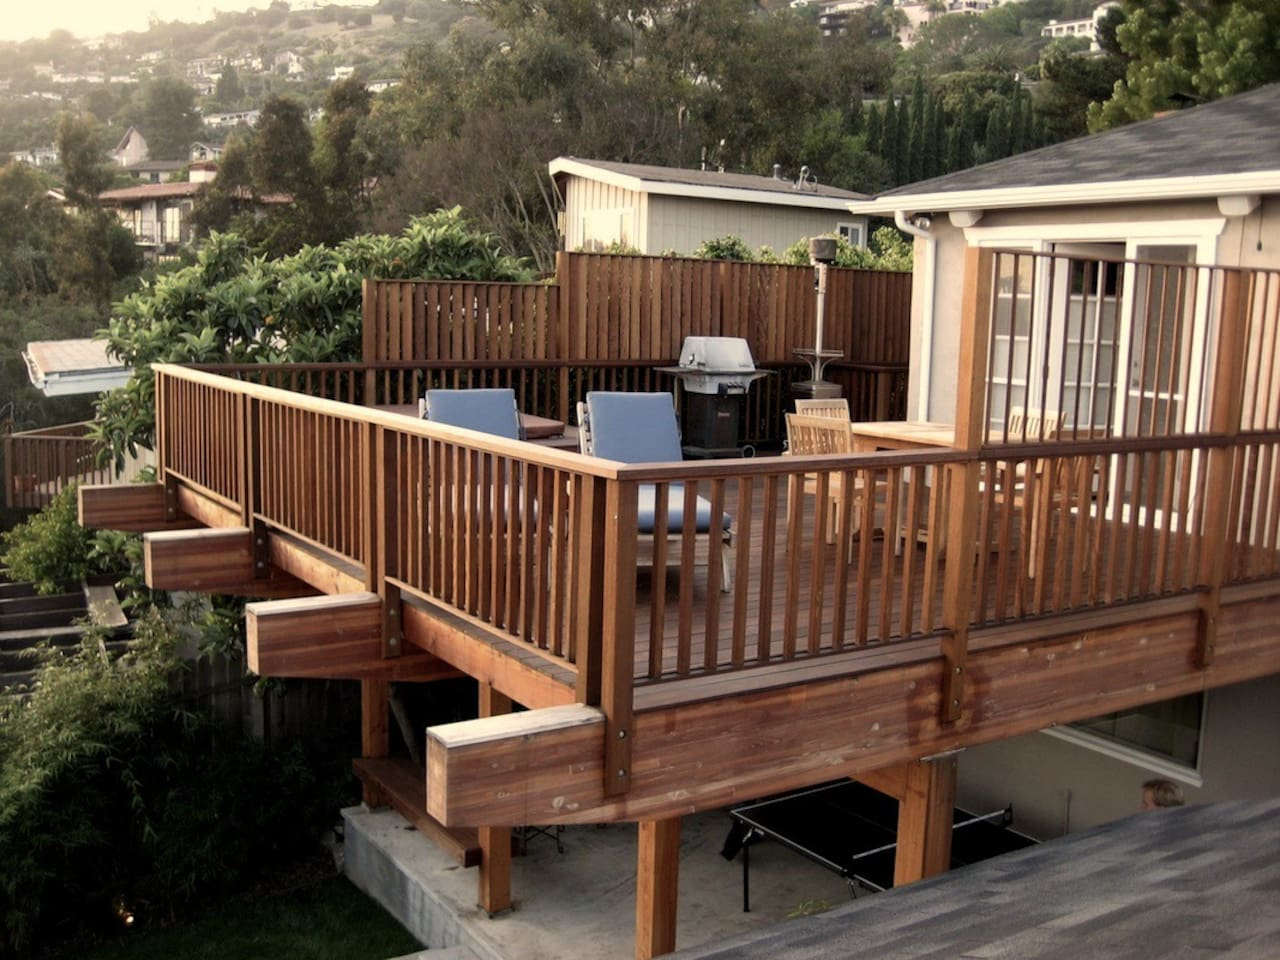 View of rear deck and house. Rental is upper level (street level) with deck. Ping pong below no longer exists and lower level is our private residence and not included.